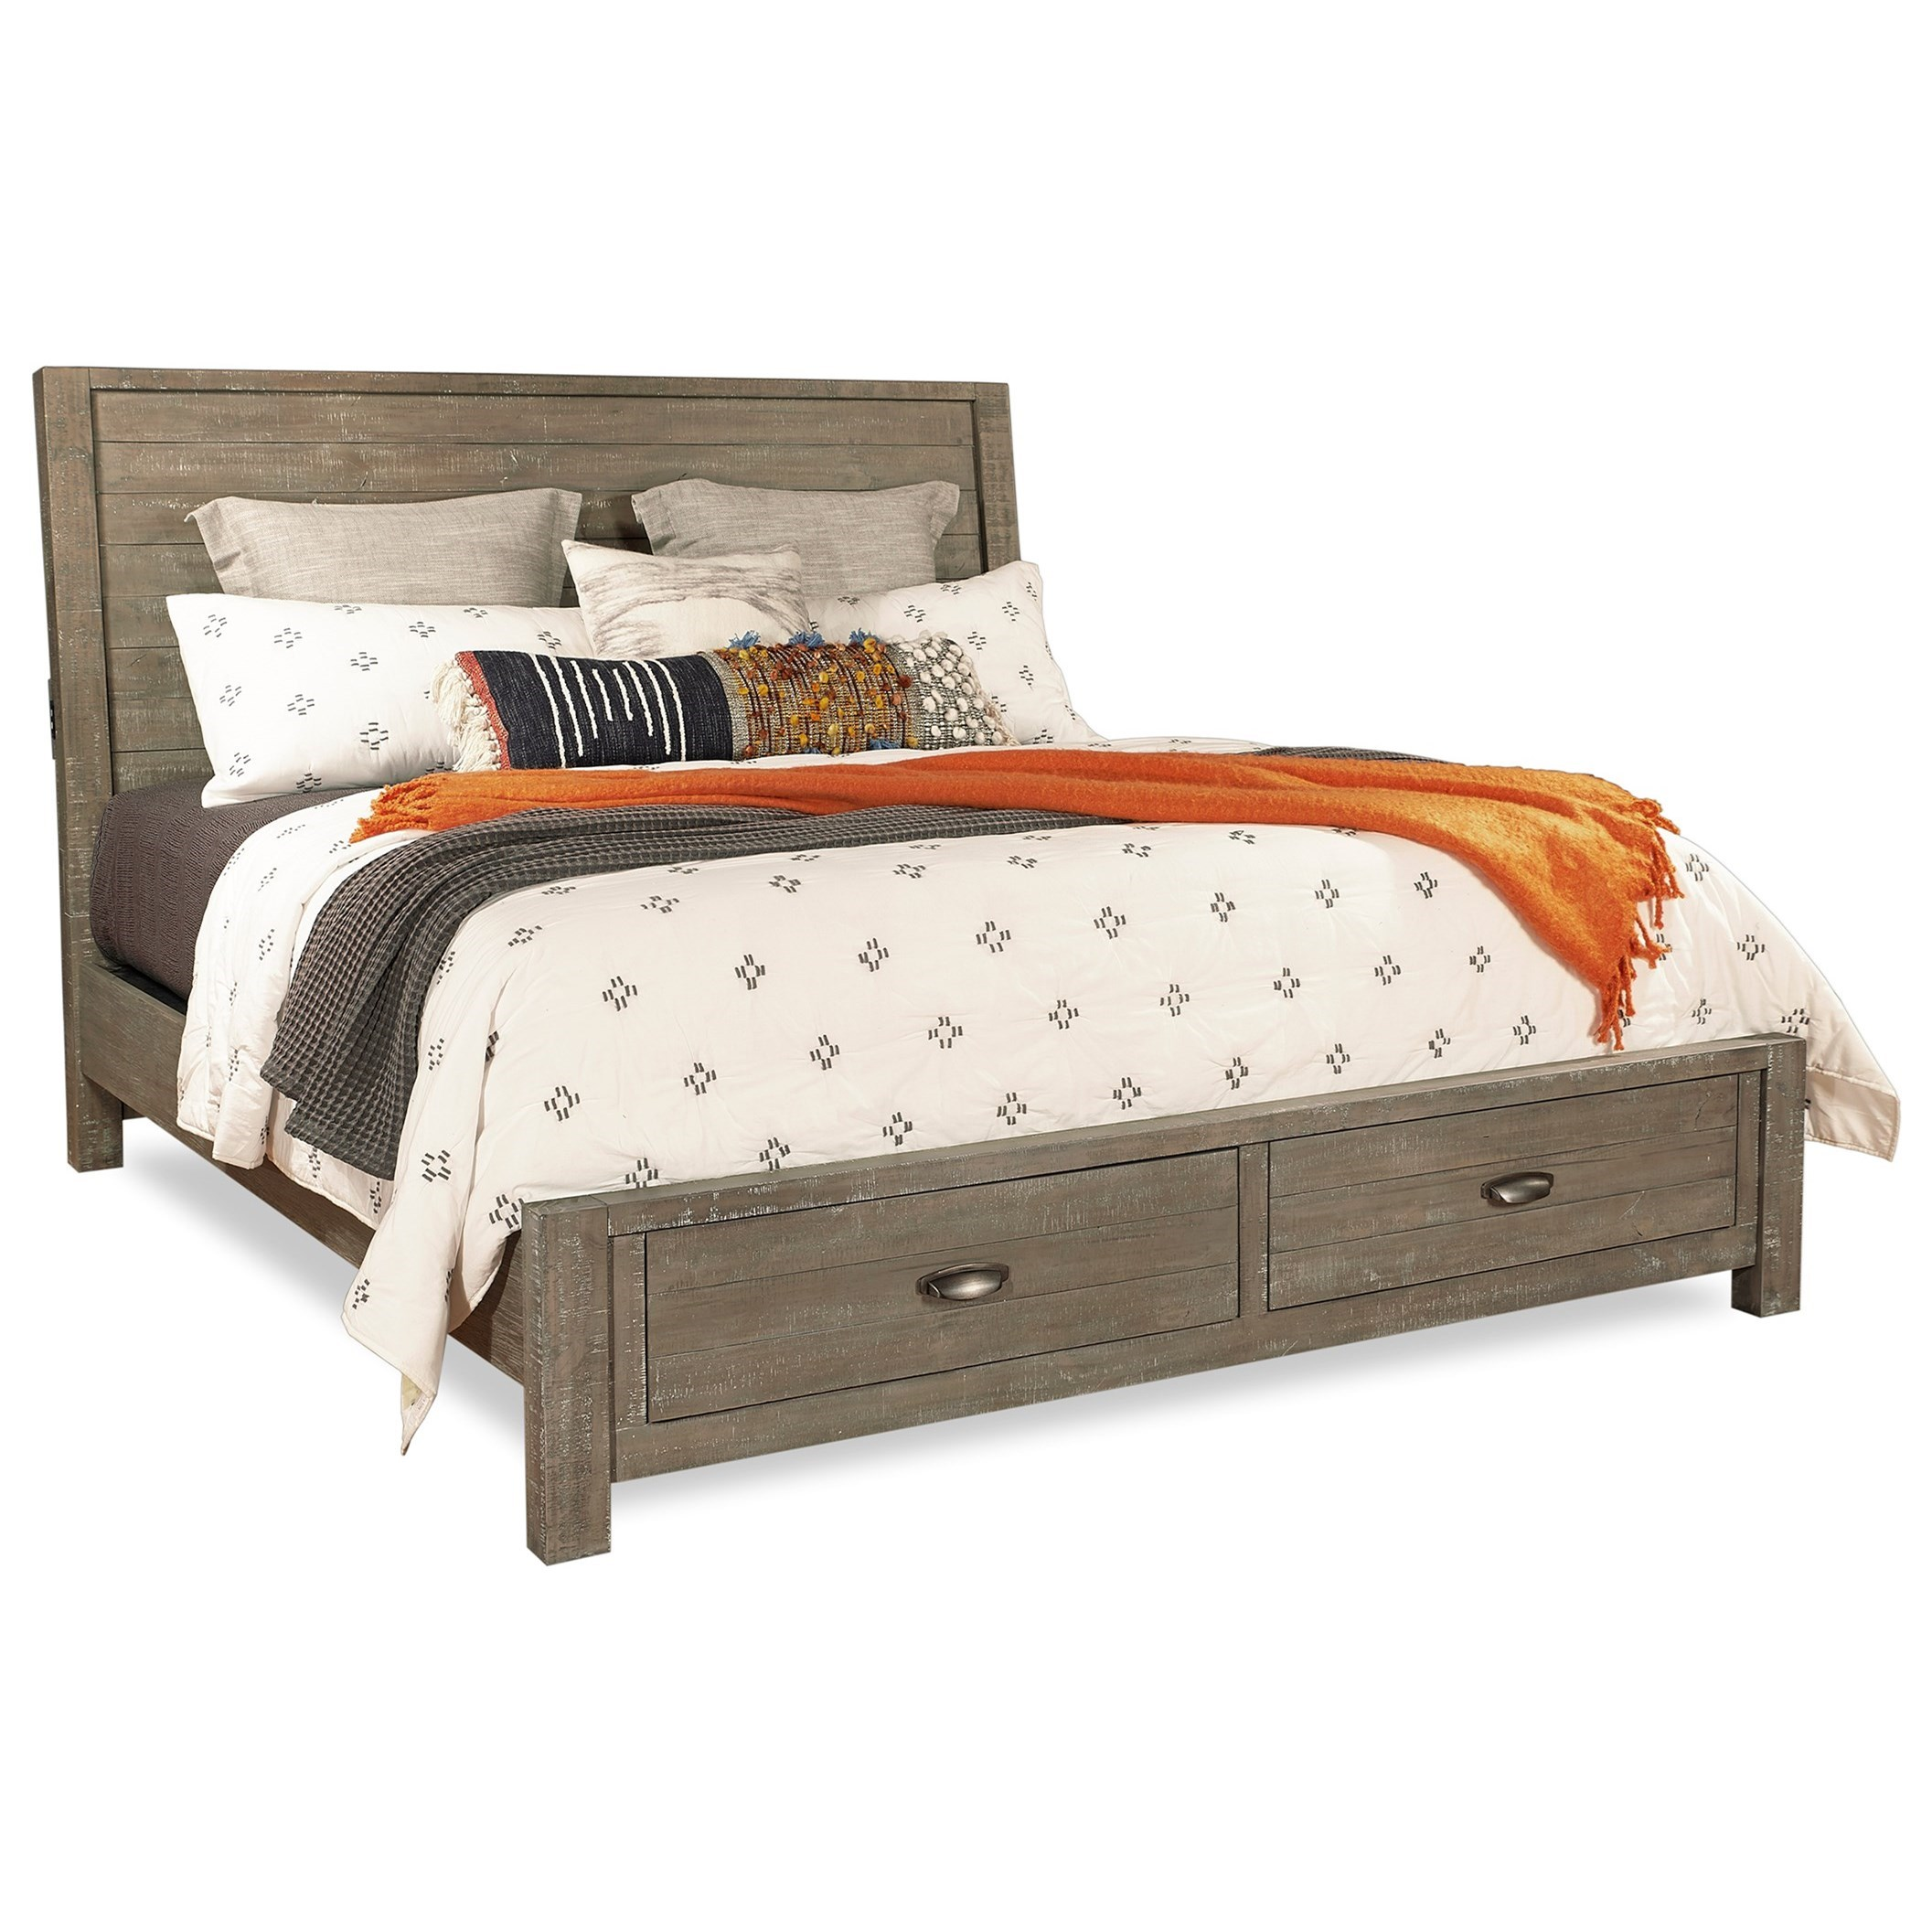 Radiata Cal King Sleigh Storage Bed by Aspenhome at Walker's Furniture